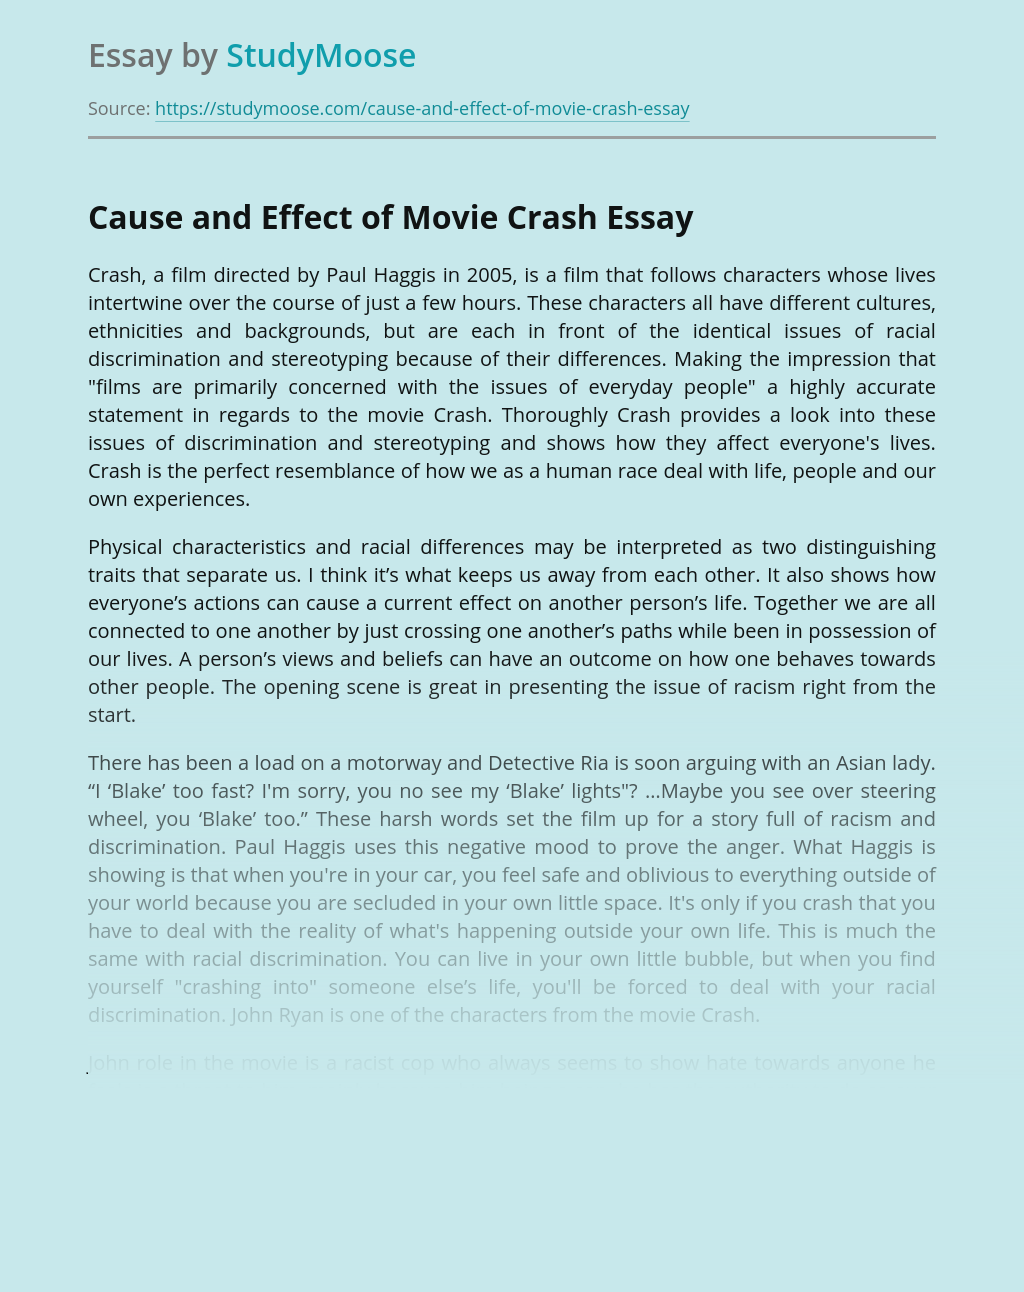 Cause and Effect of Movie Crash